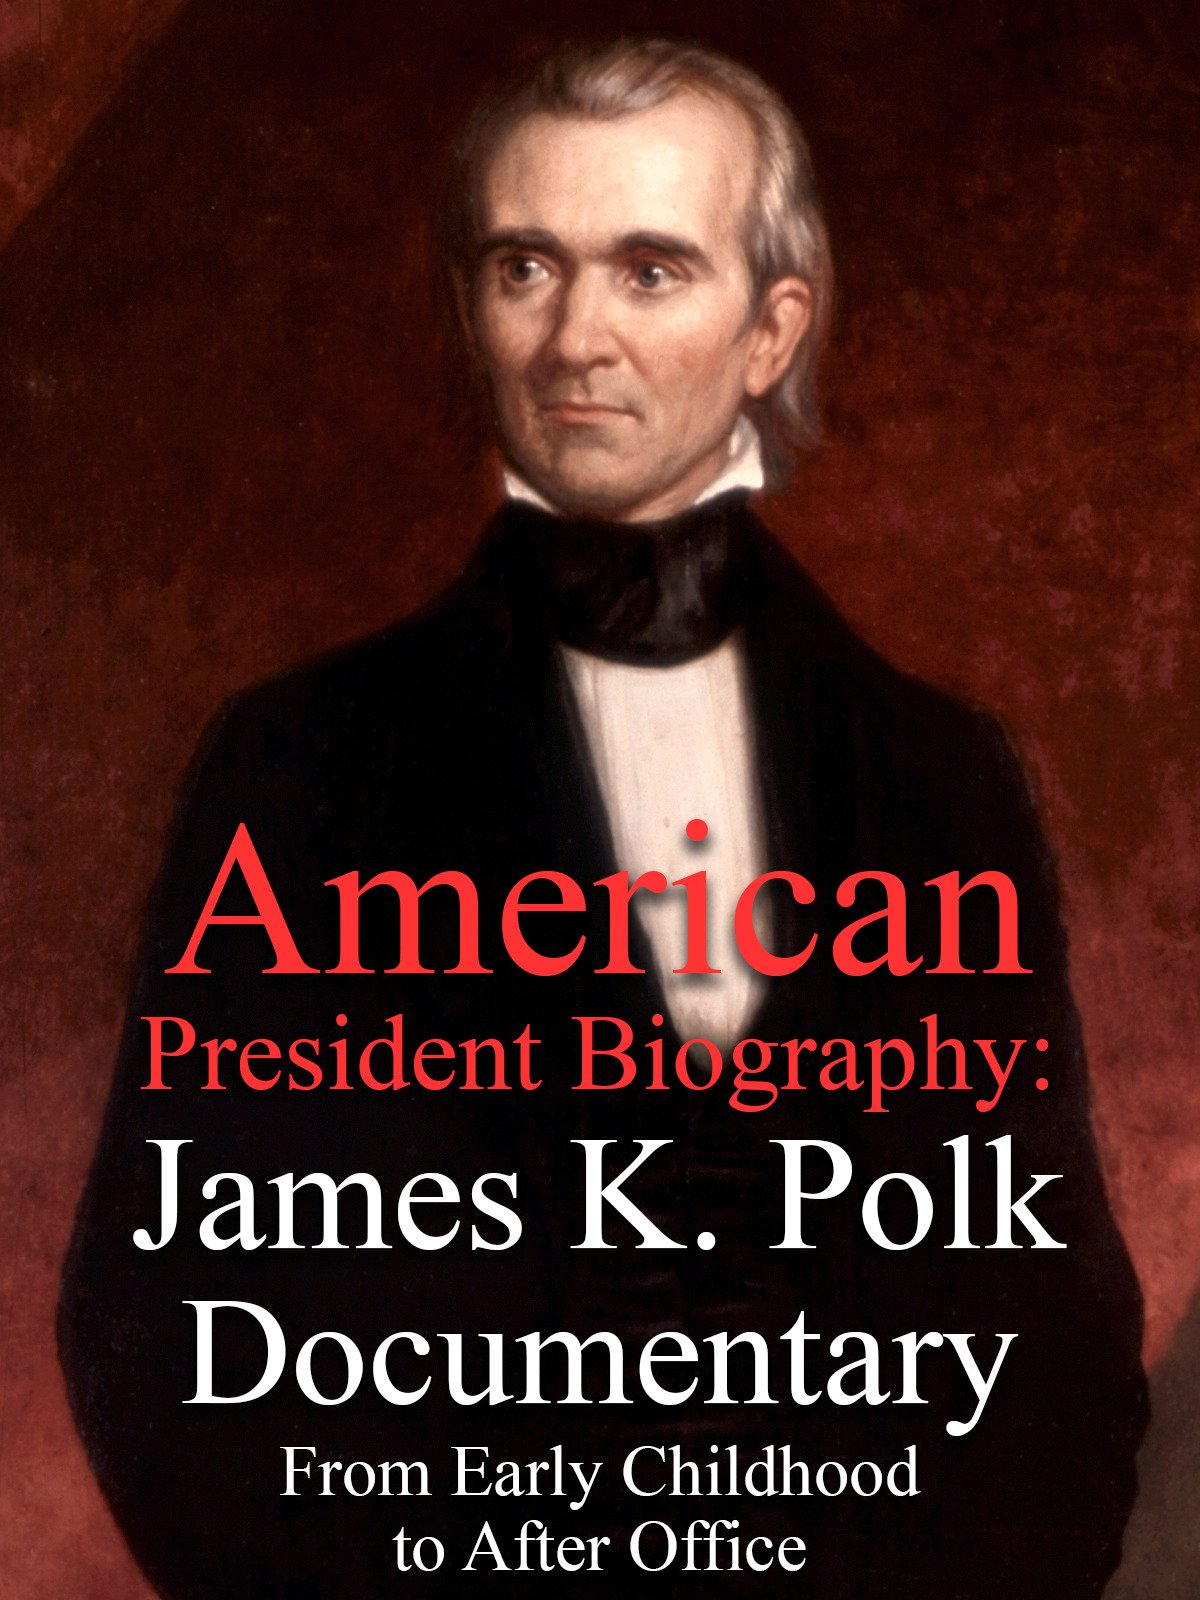 American President Biography: James K. Polk Documentary From Early Childhood to After Office